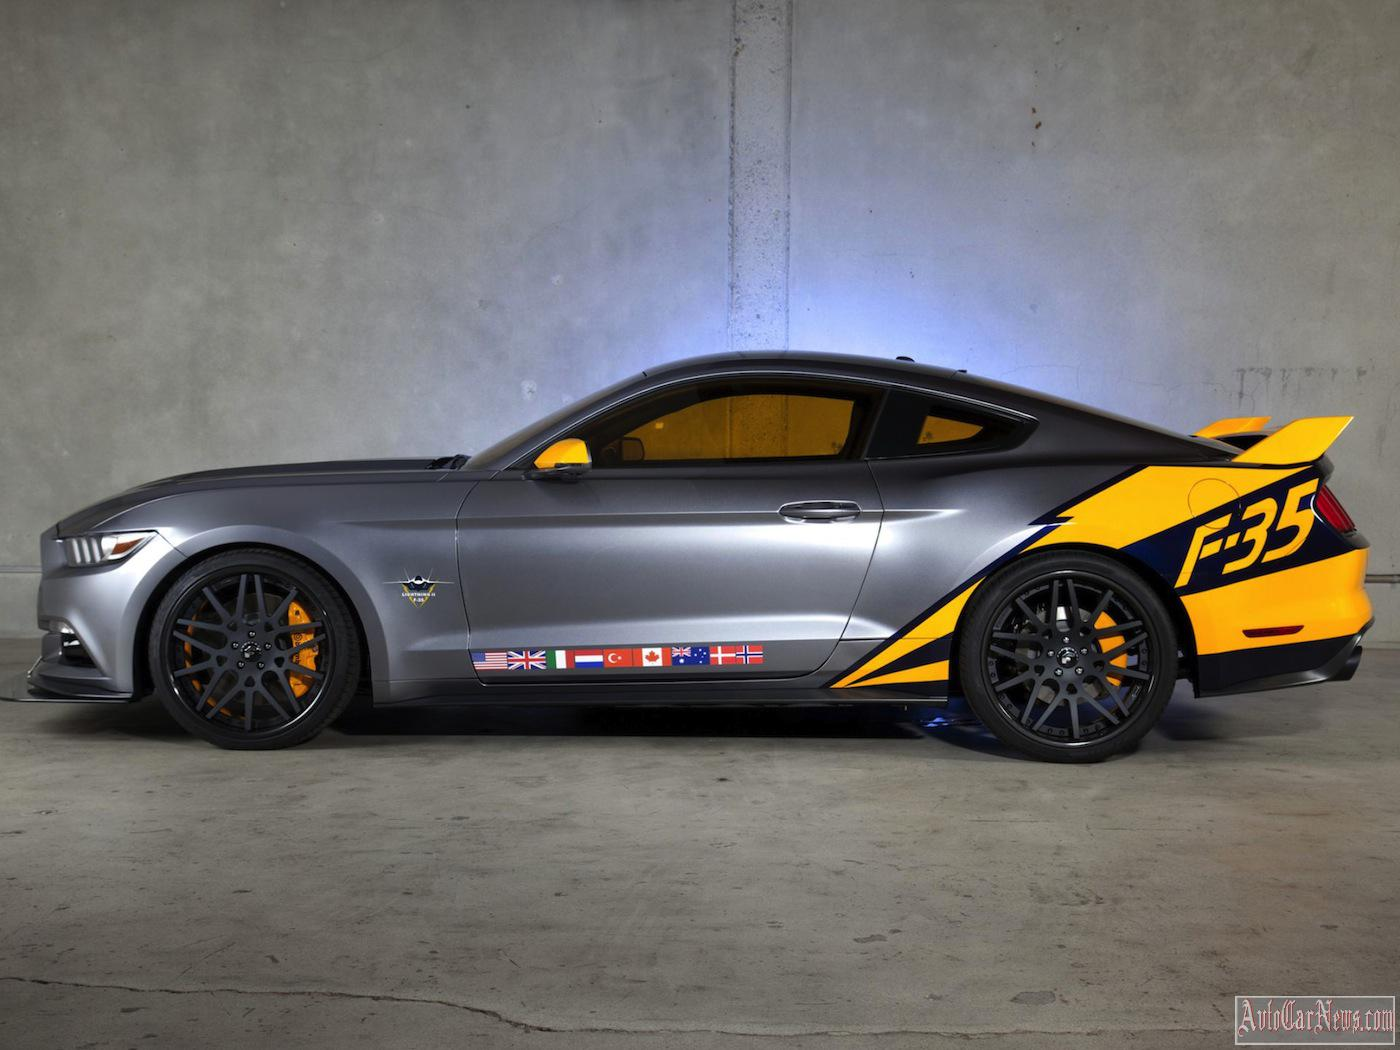 2015 Ford Mustang GT F-35 Lightning II Edition Photo